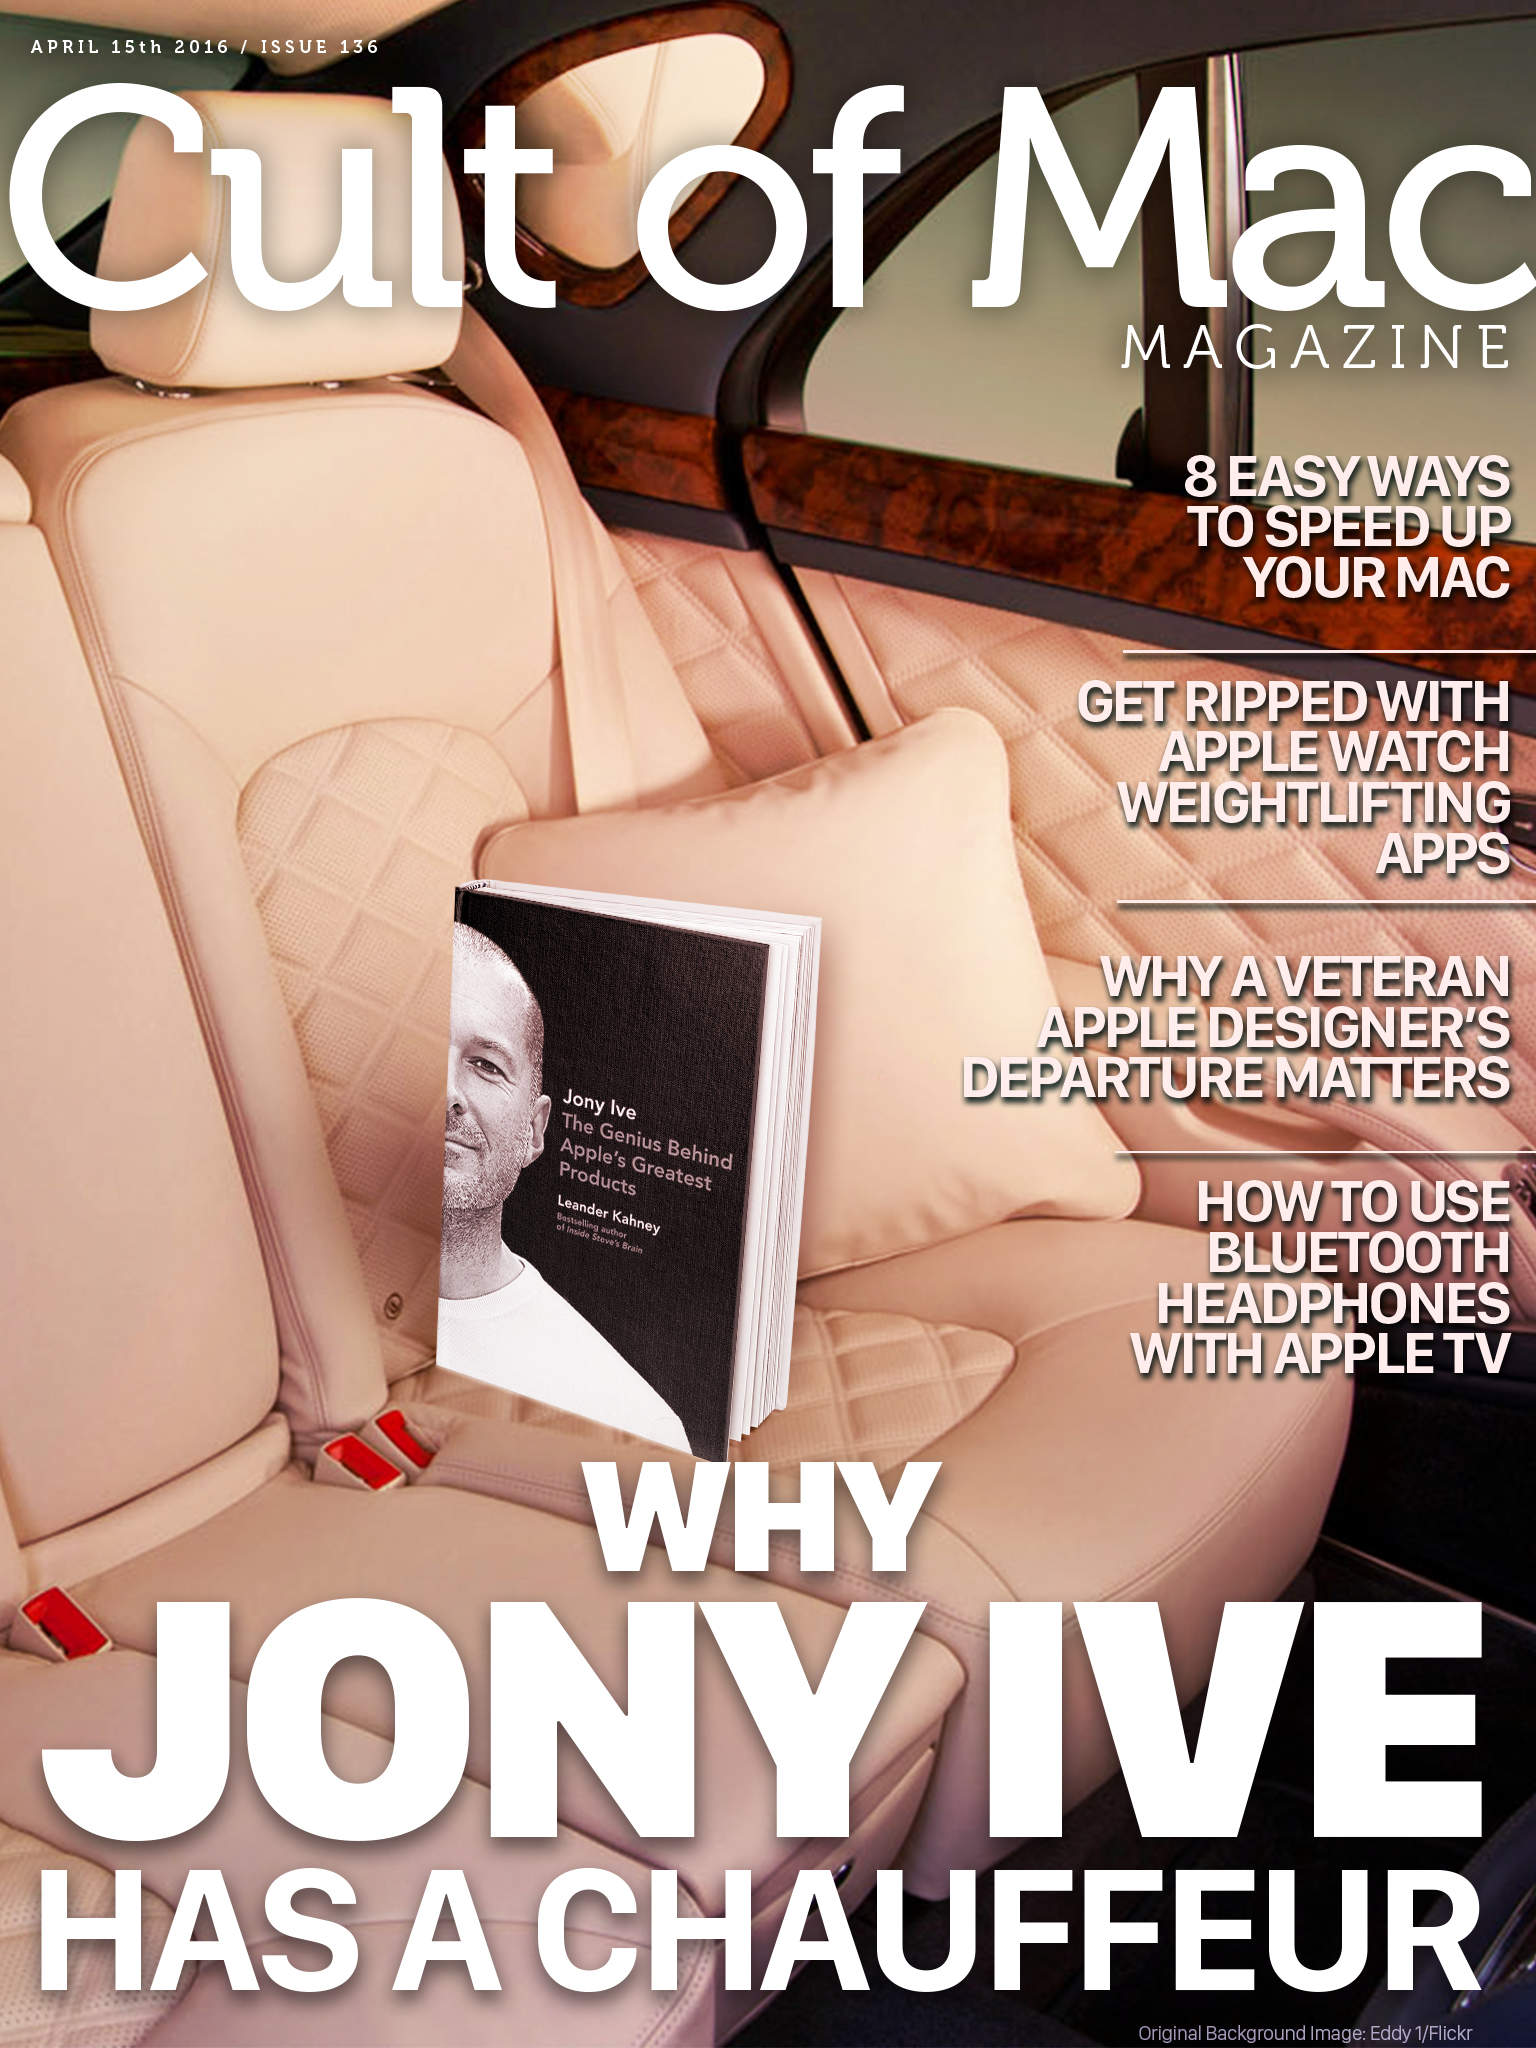 Why does Jony Ive ride around in a Bentley? Cult of Mac will tell you.